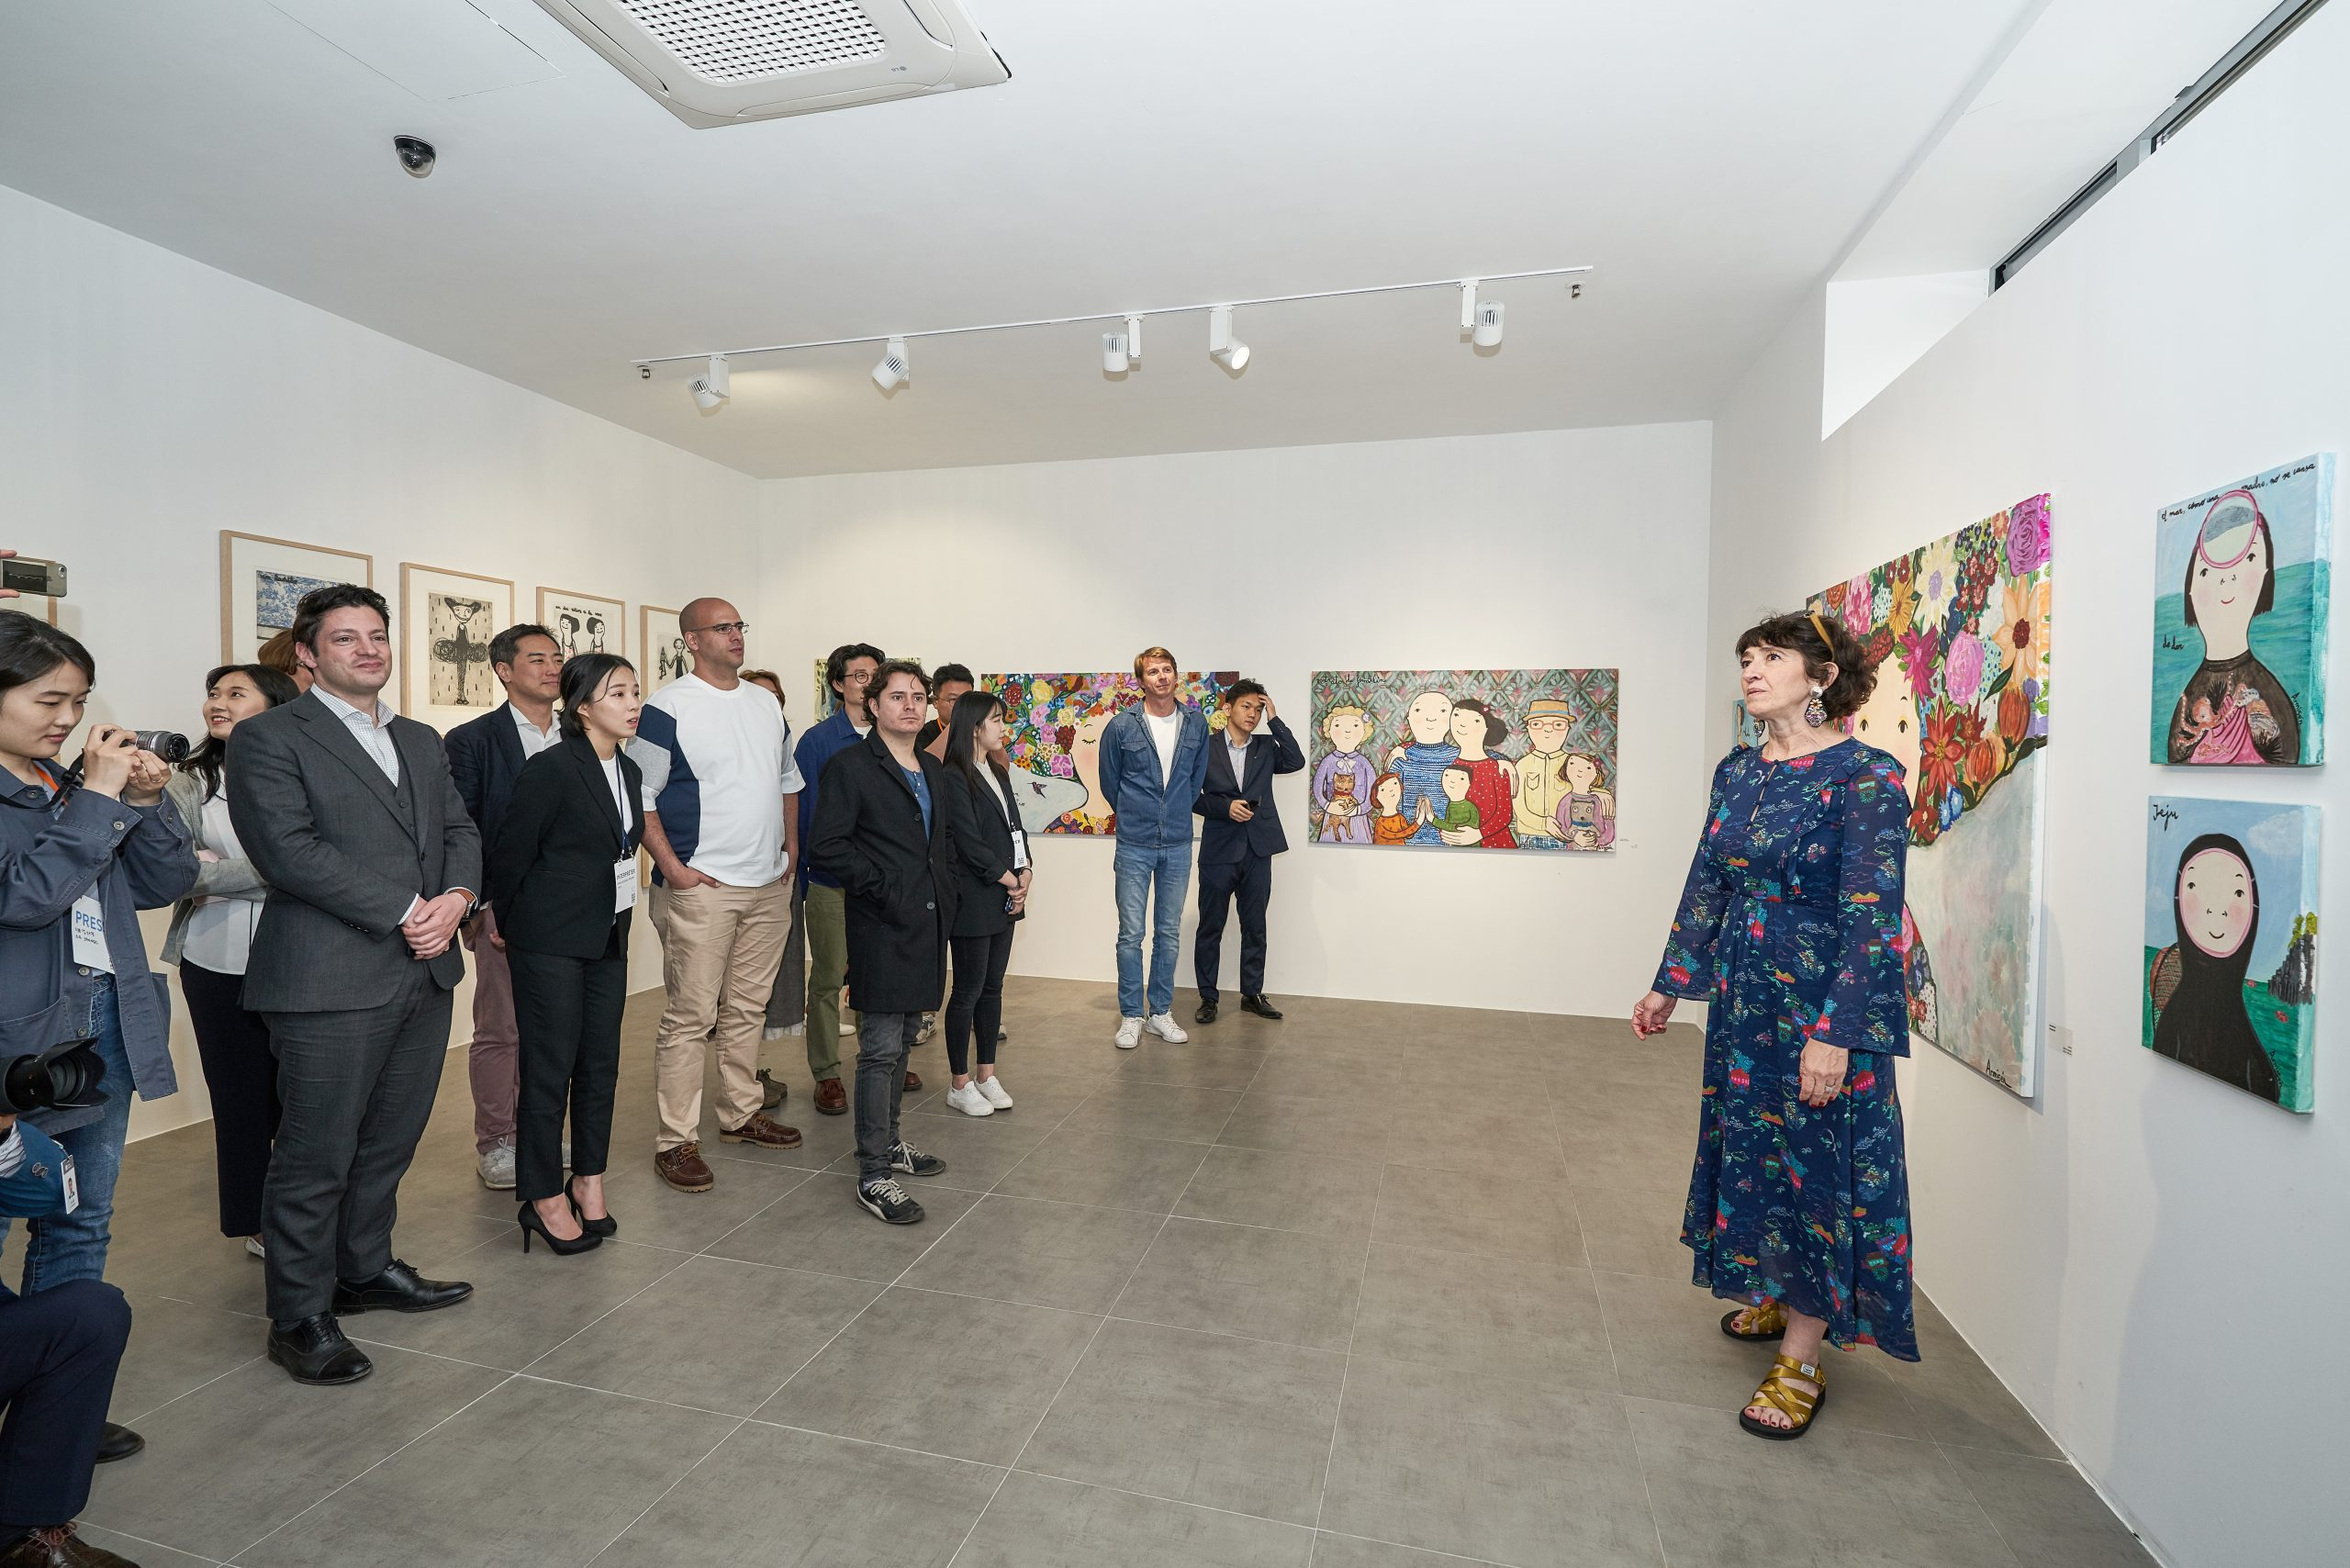 Spanish painter Eva Almerson's picture exhibition and collaboration with JFWF Chef